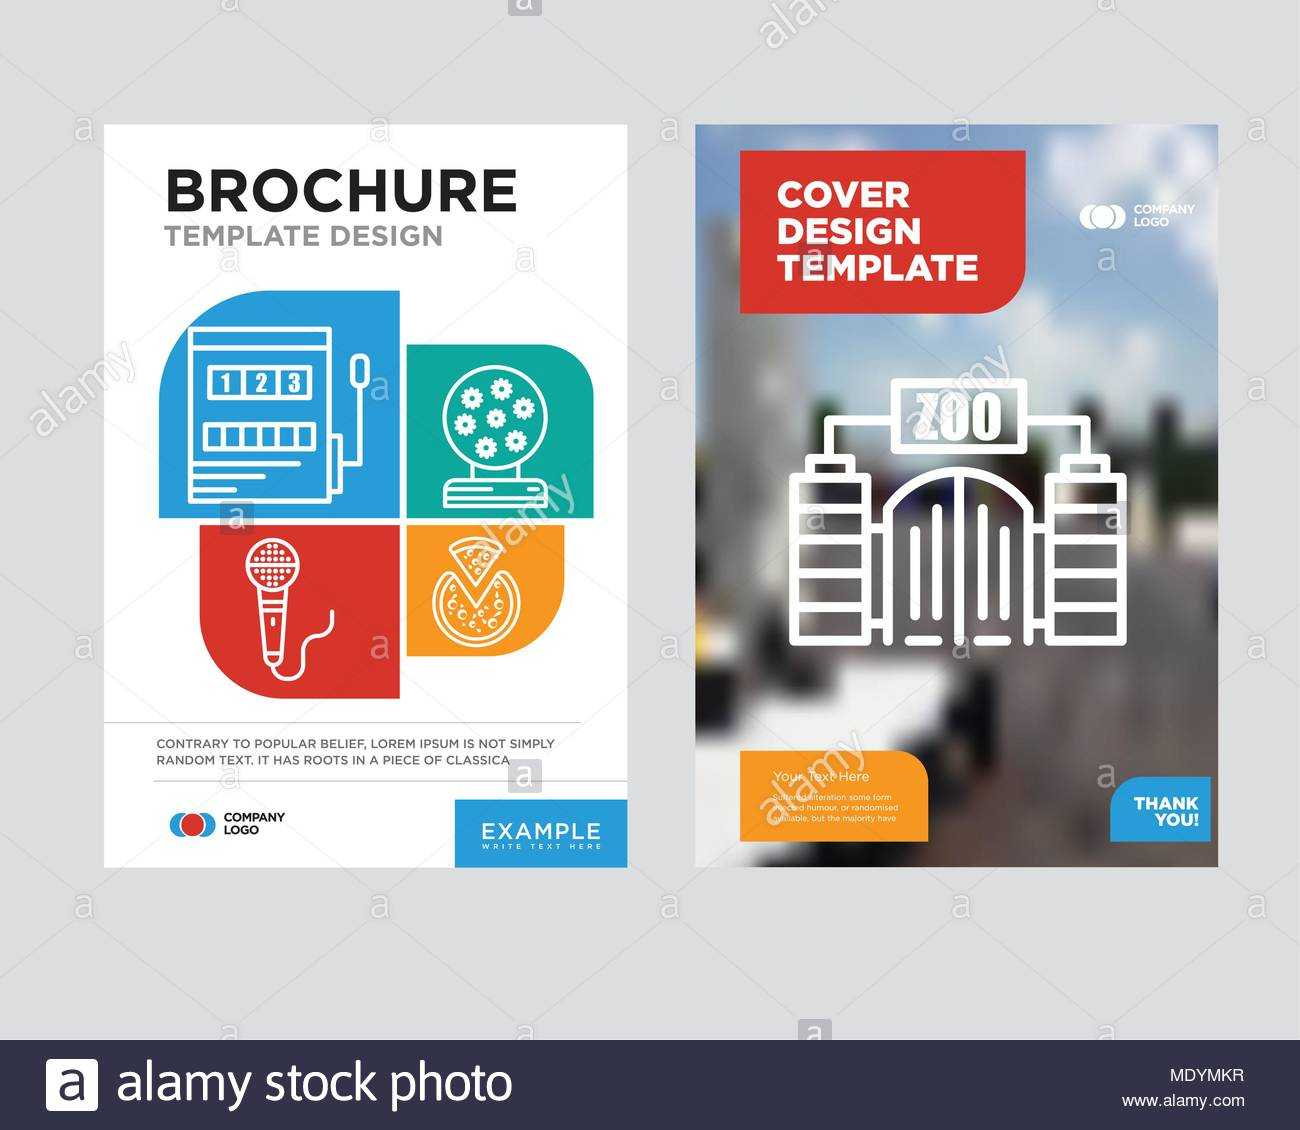 Zoo Brochure Flyer Design Template With Abstract Photo Within Zoo Brochure Template